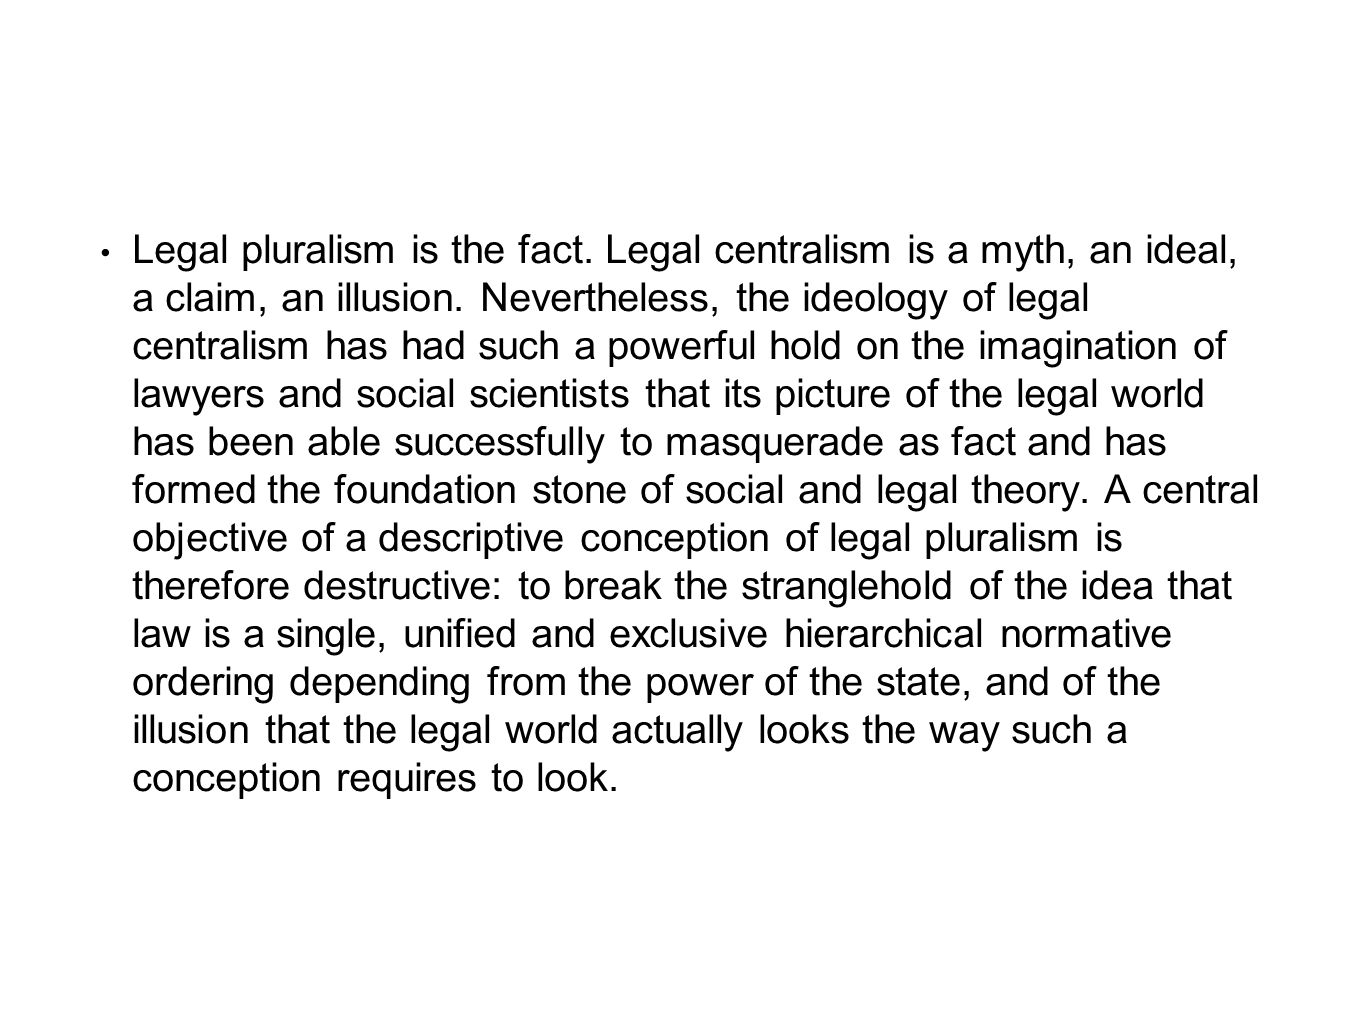 Legal pluralism is the fact